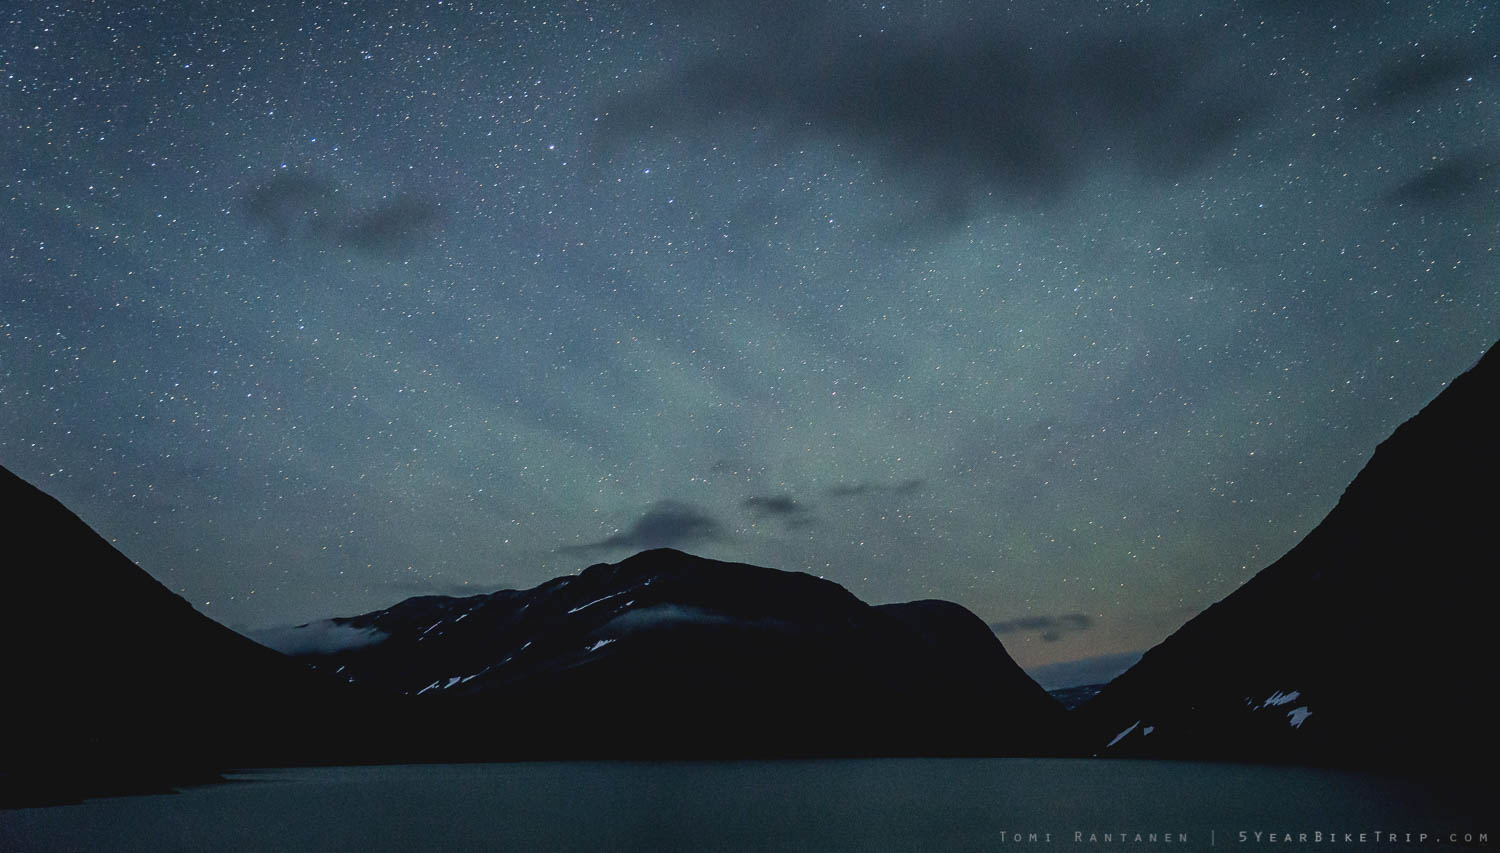 Stars over mountains is a sight I'll never get tired of.